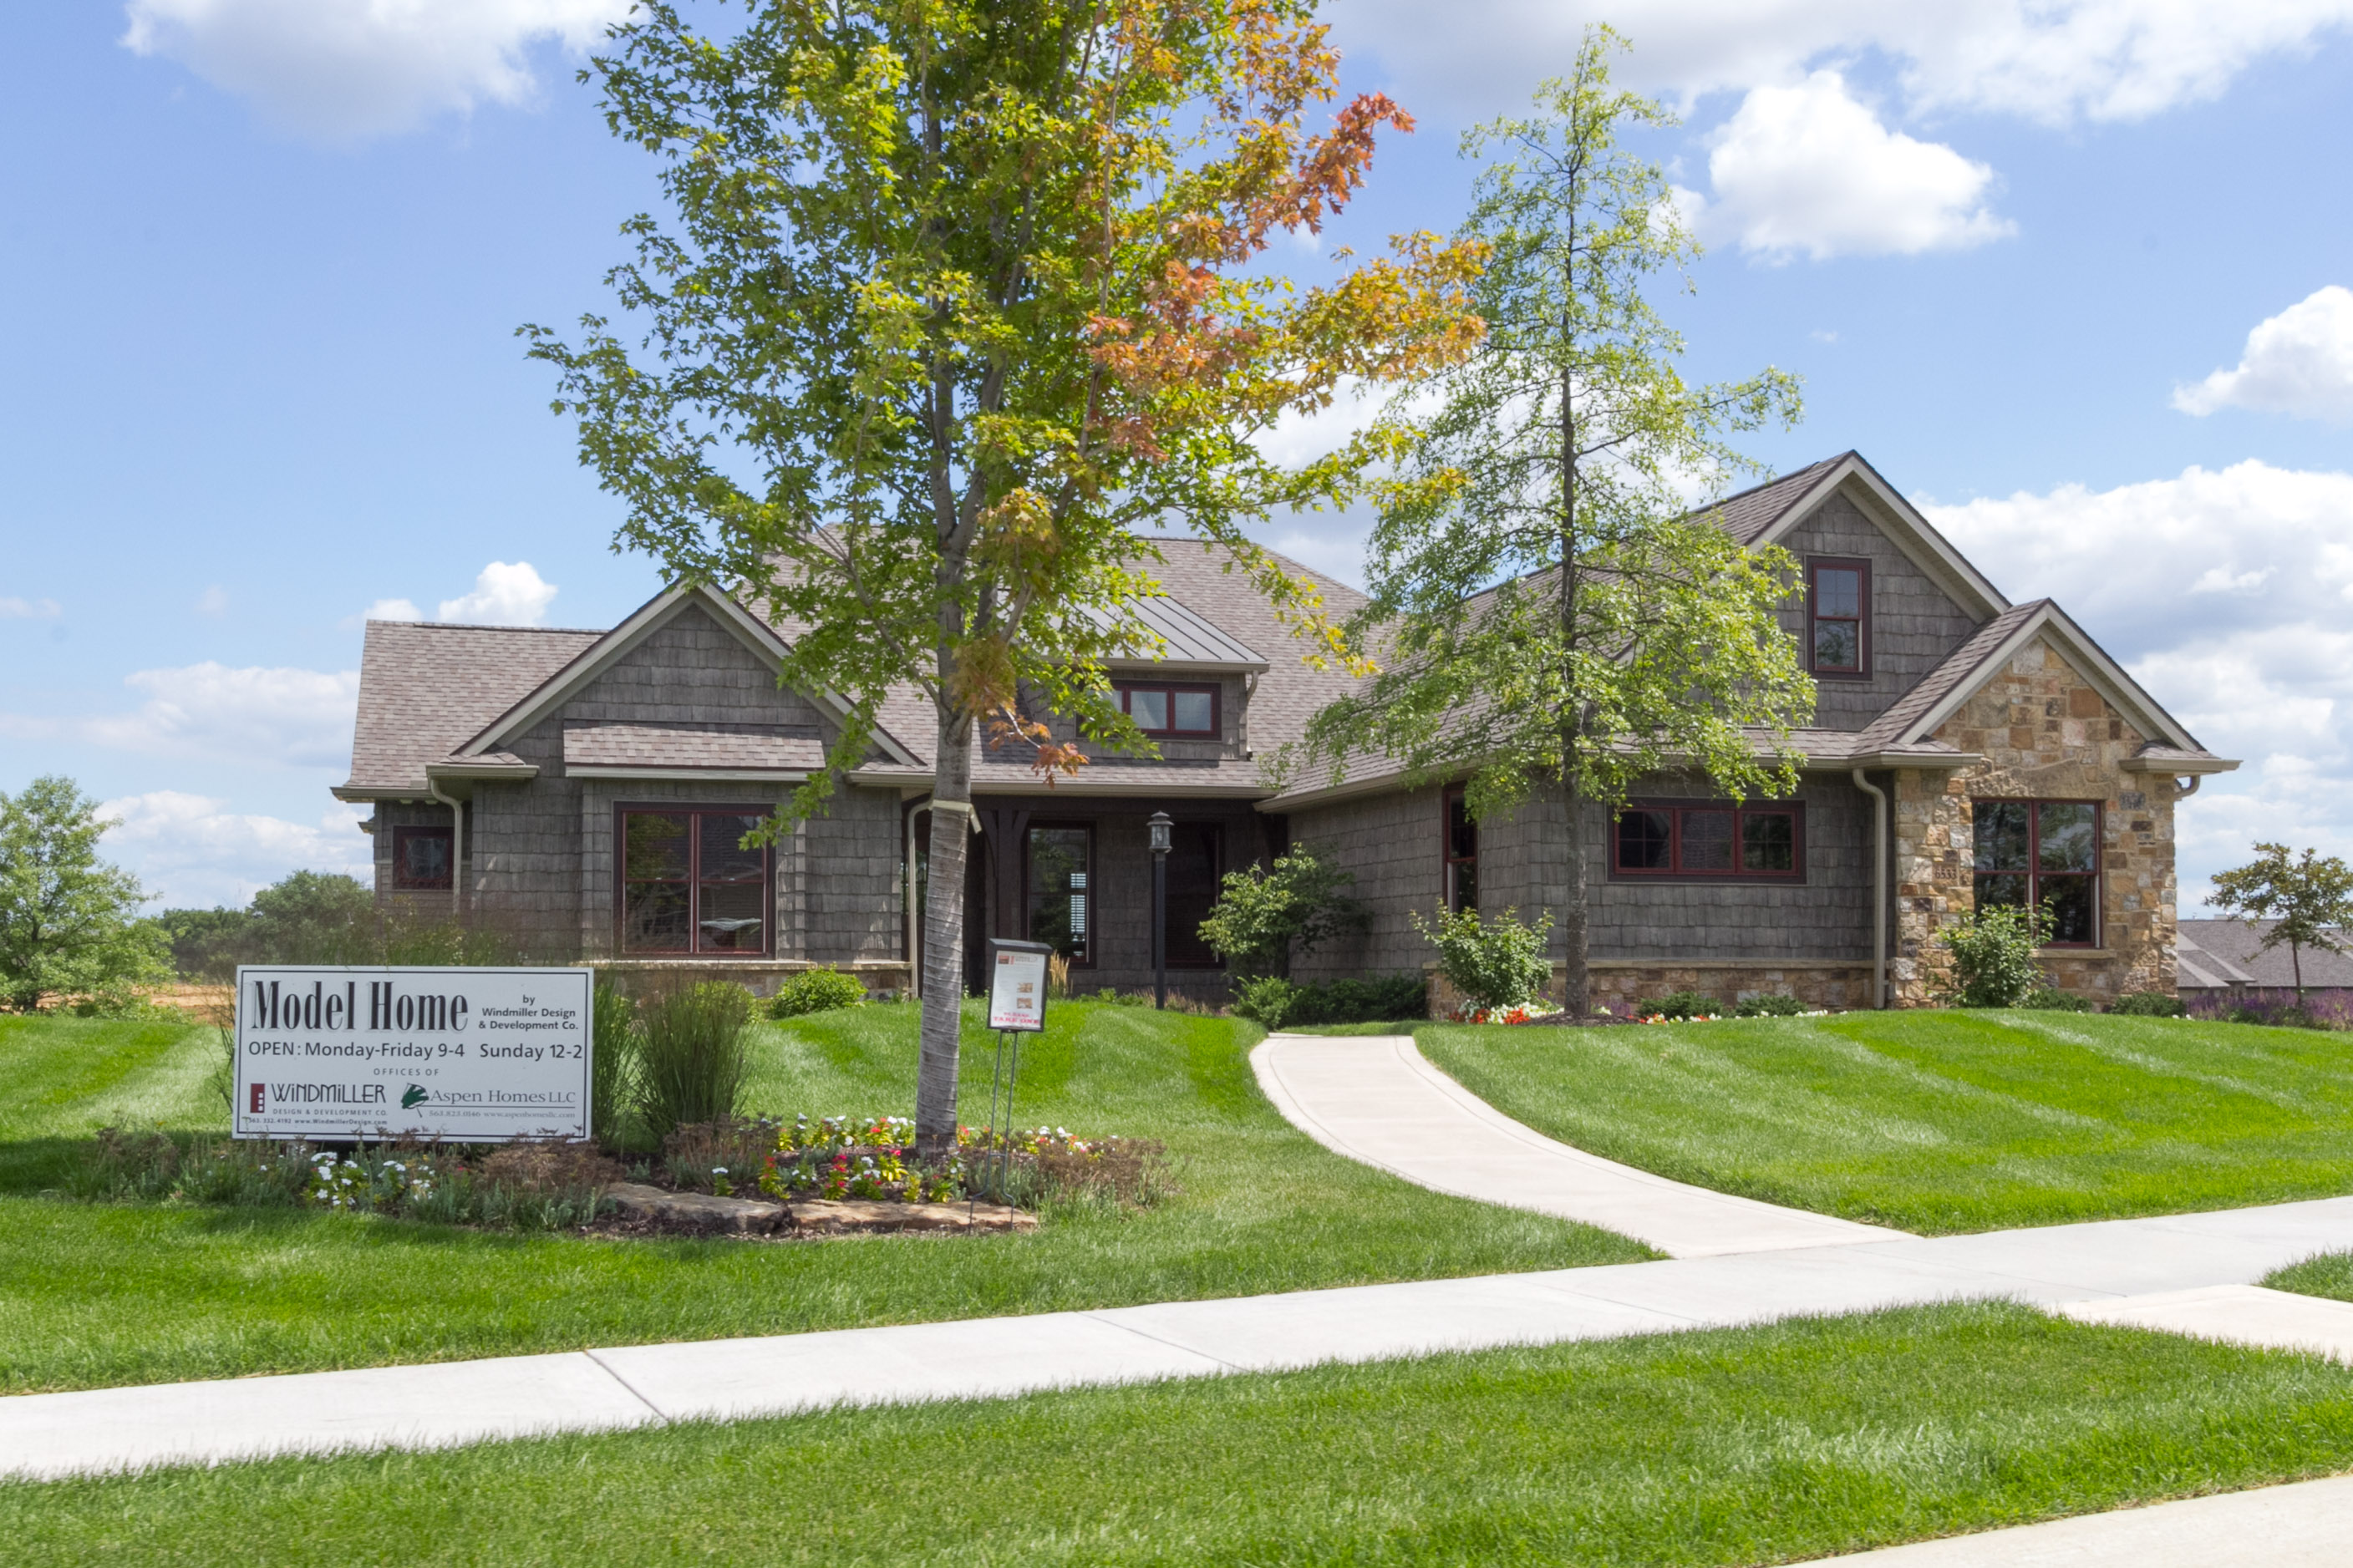 New Homes For Sale Quad Cities Il